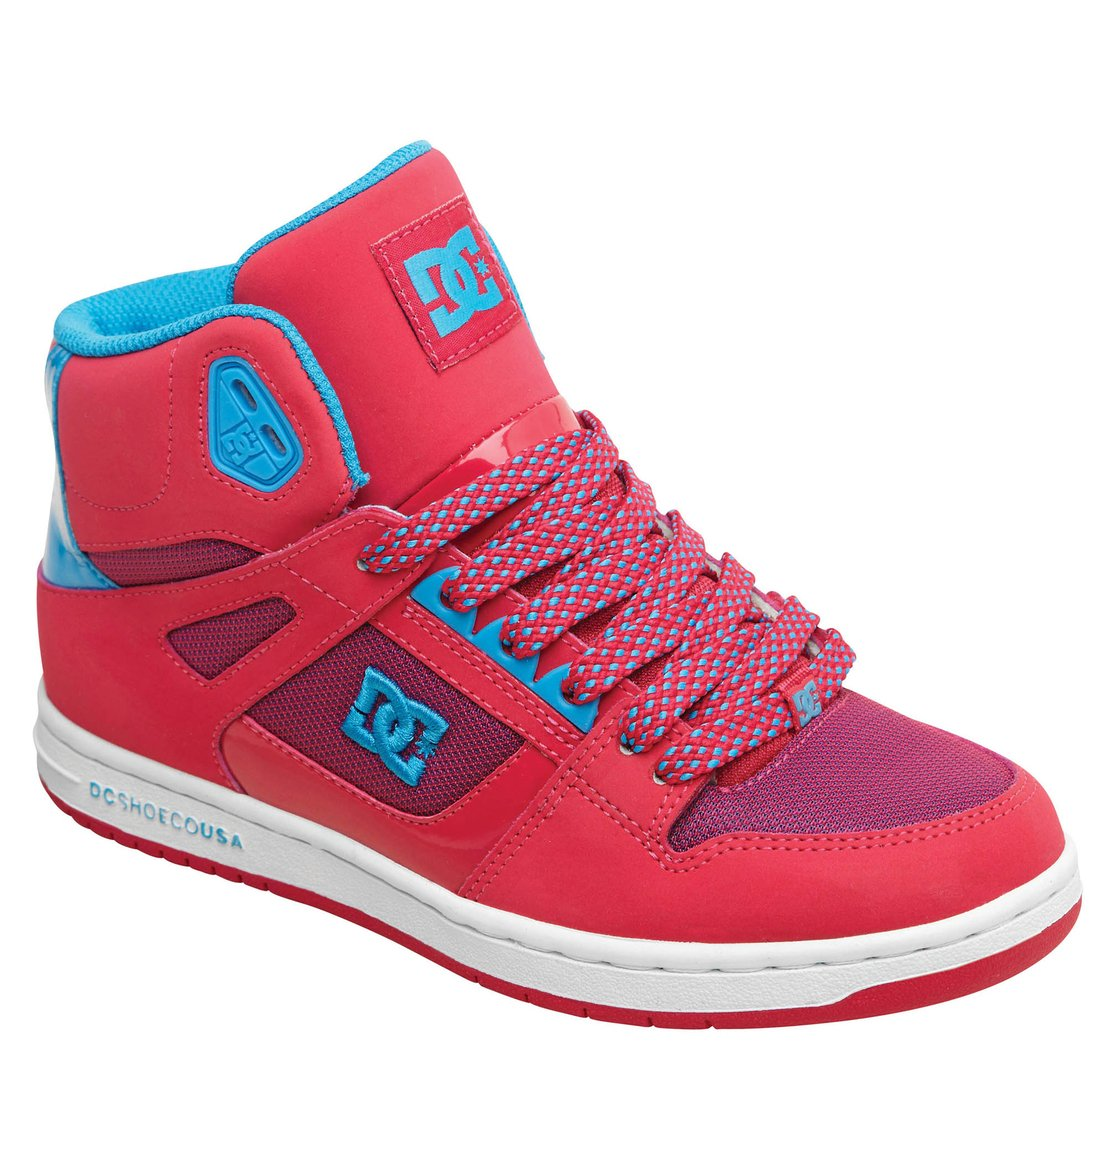 861ee9b36326 1 Women s Rebound High Shoes 302164 DC Shoes